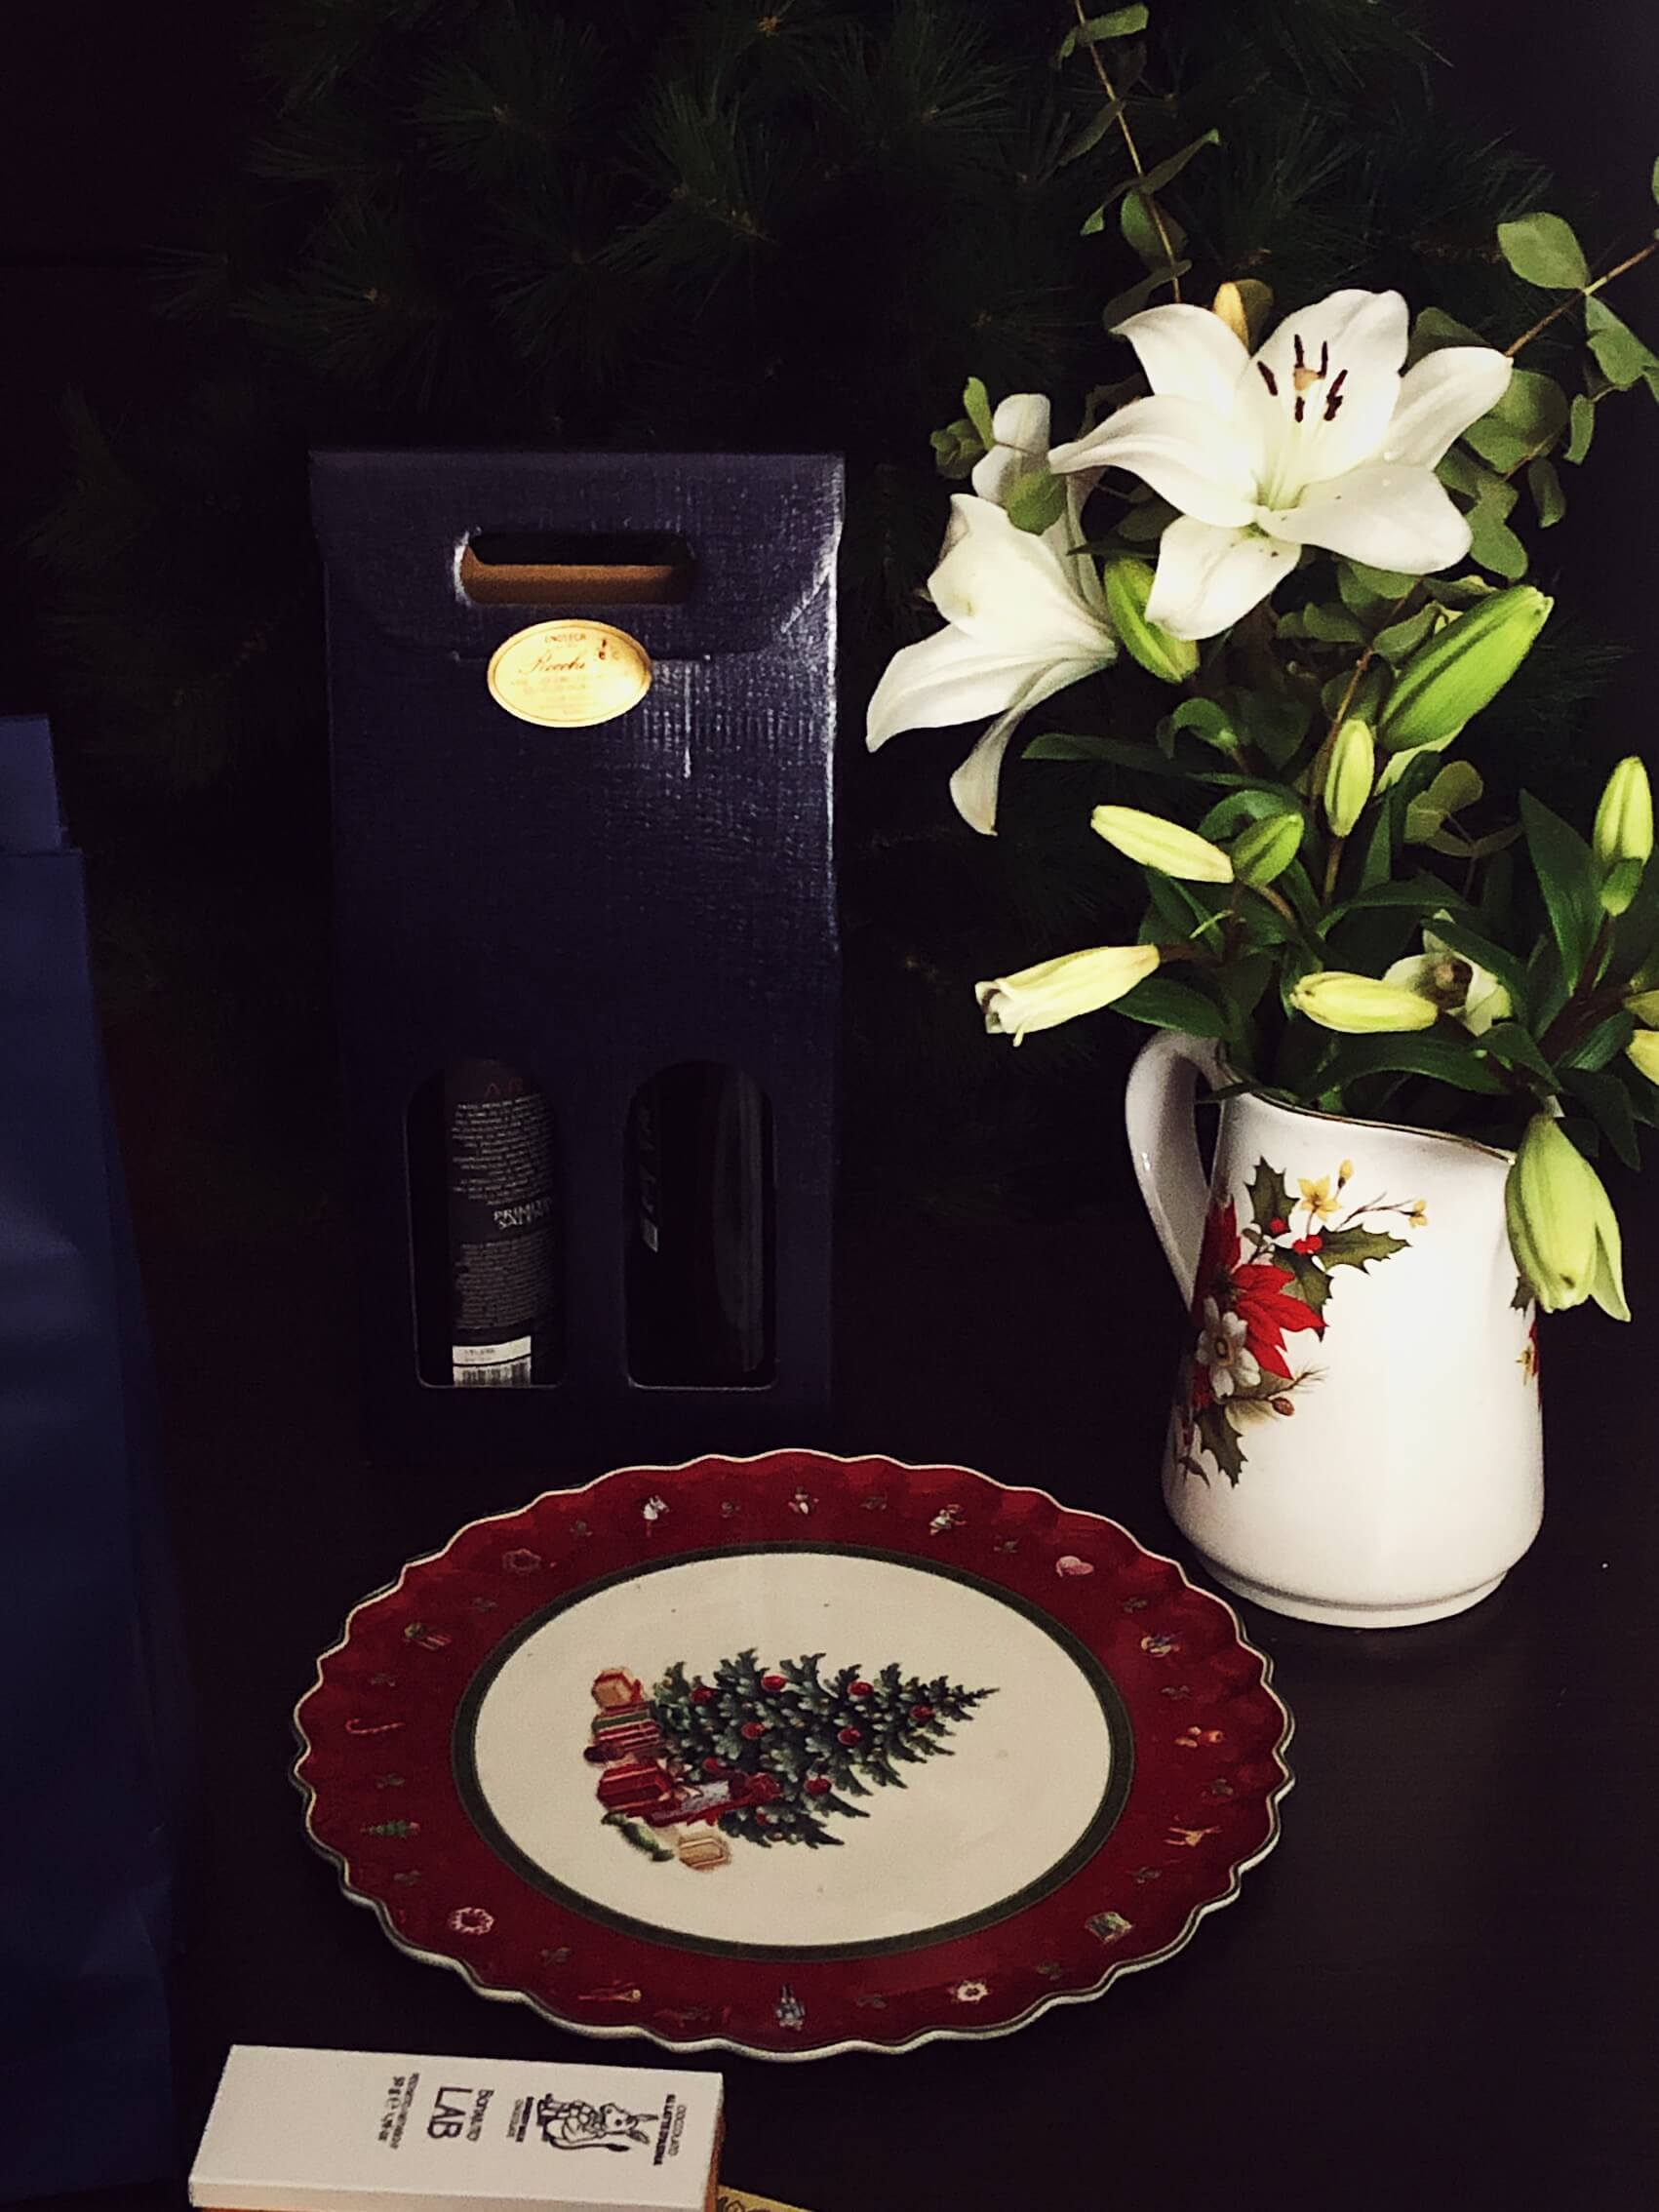 Christmas flowers, a plate, and two bottles of wine